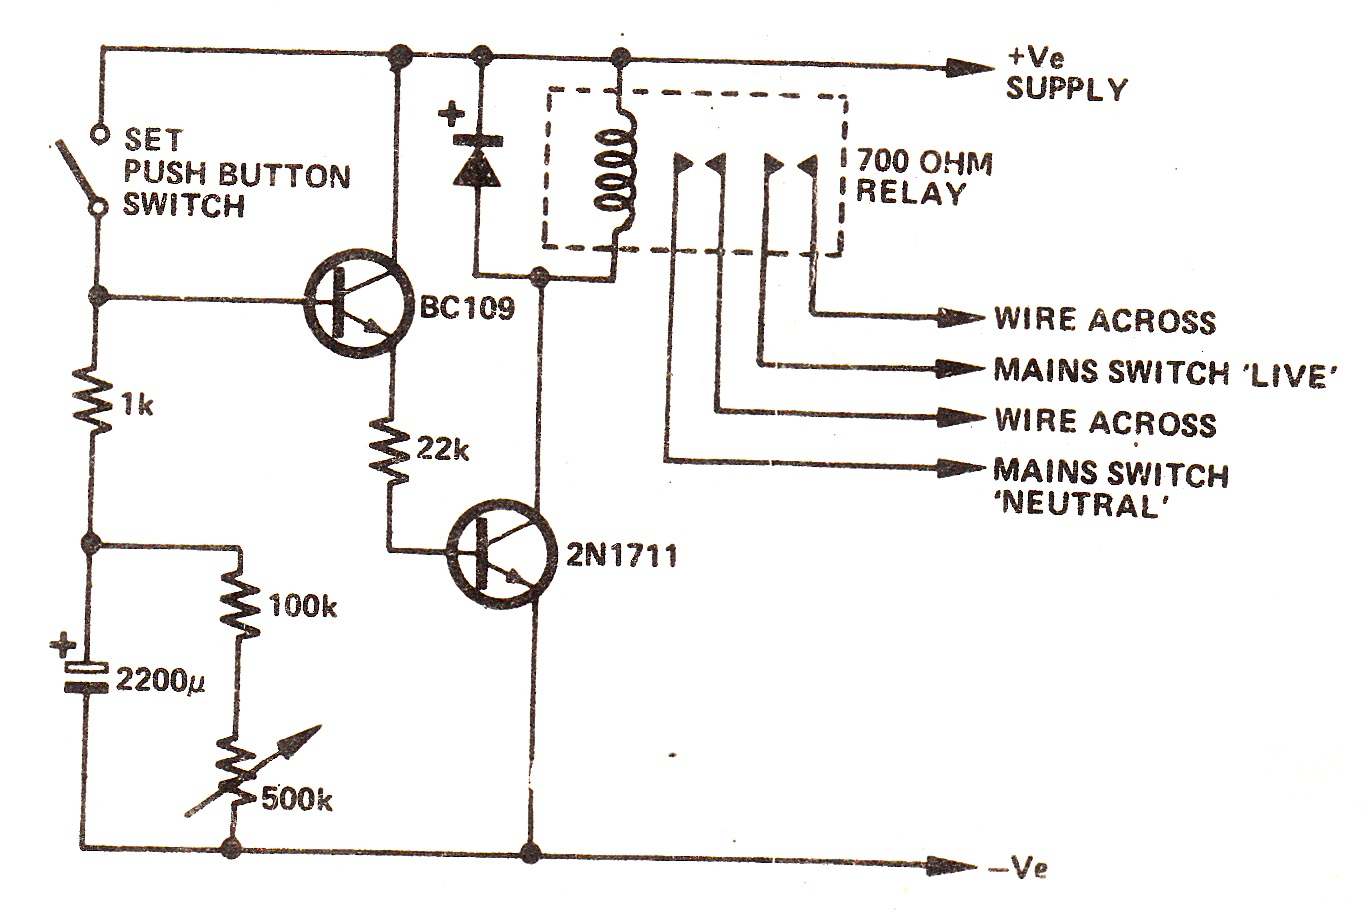 off delay timer wiring diagram cherokee snooze circuit